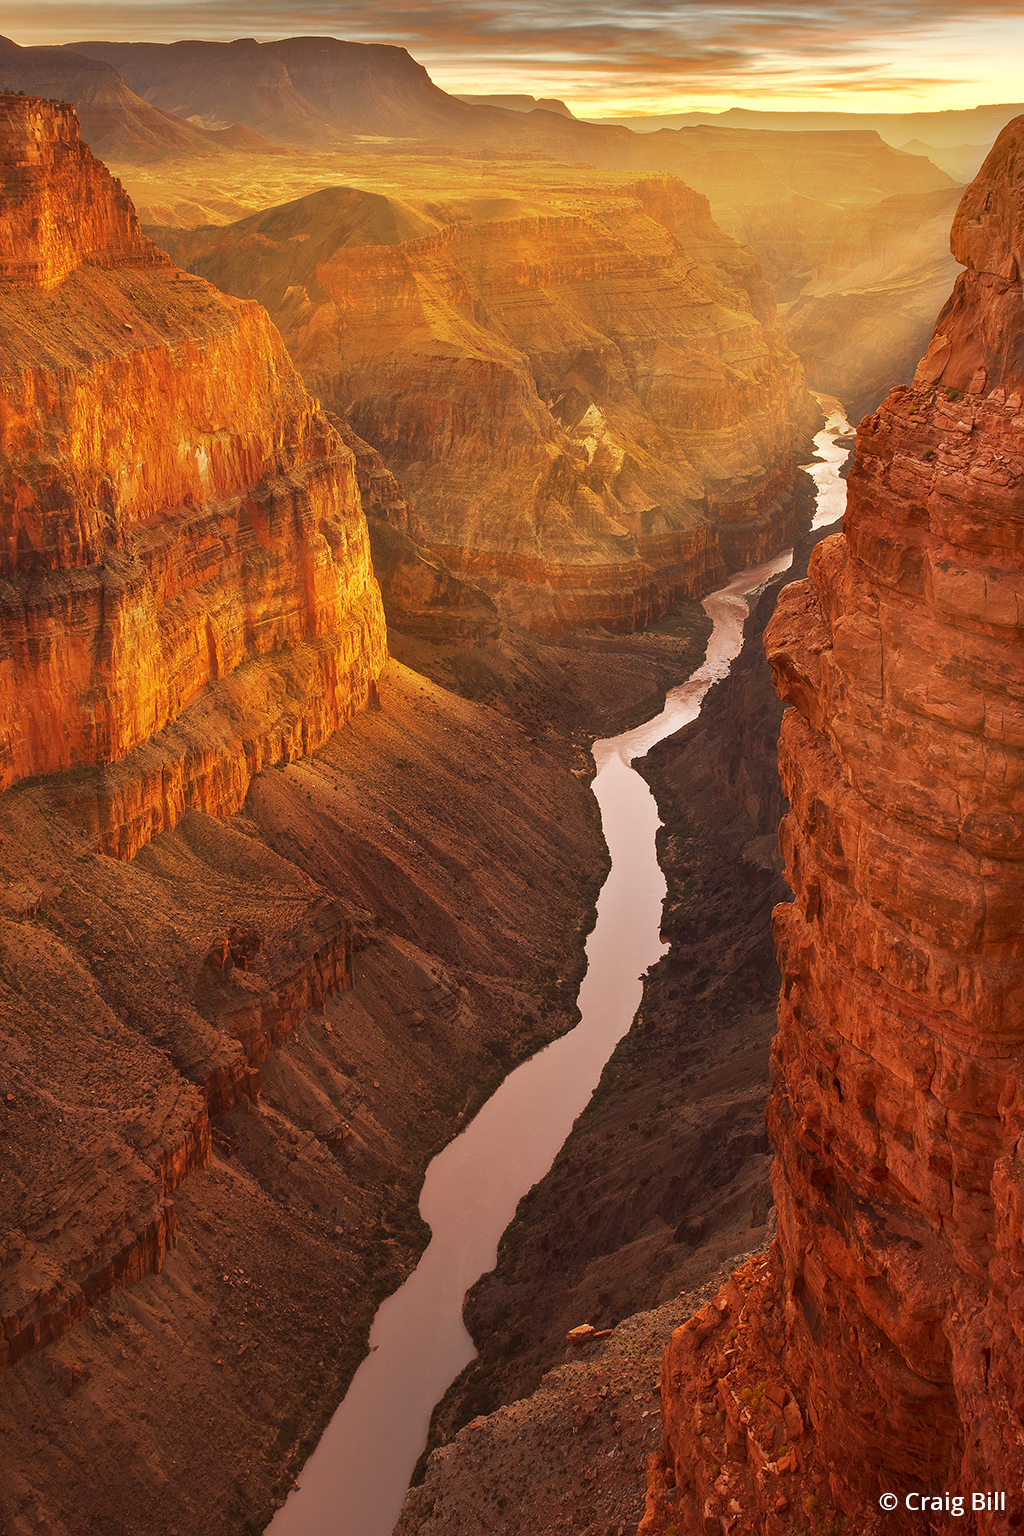 Photo taken at Toroweap Overlook, Grand Canyon